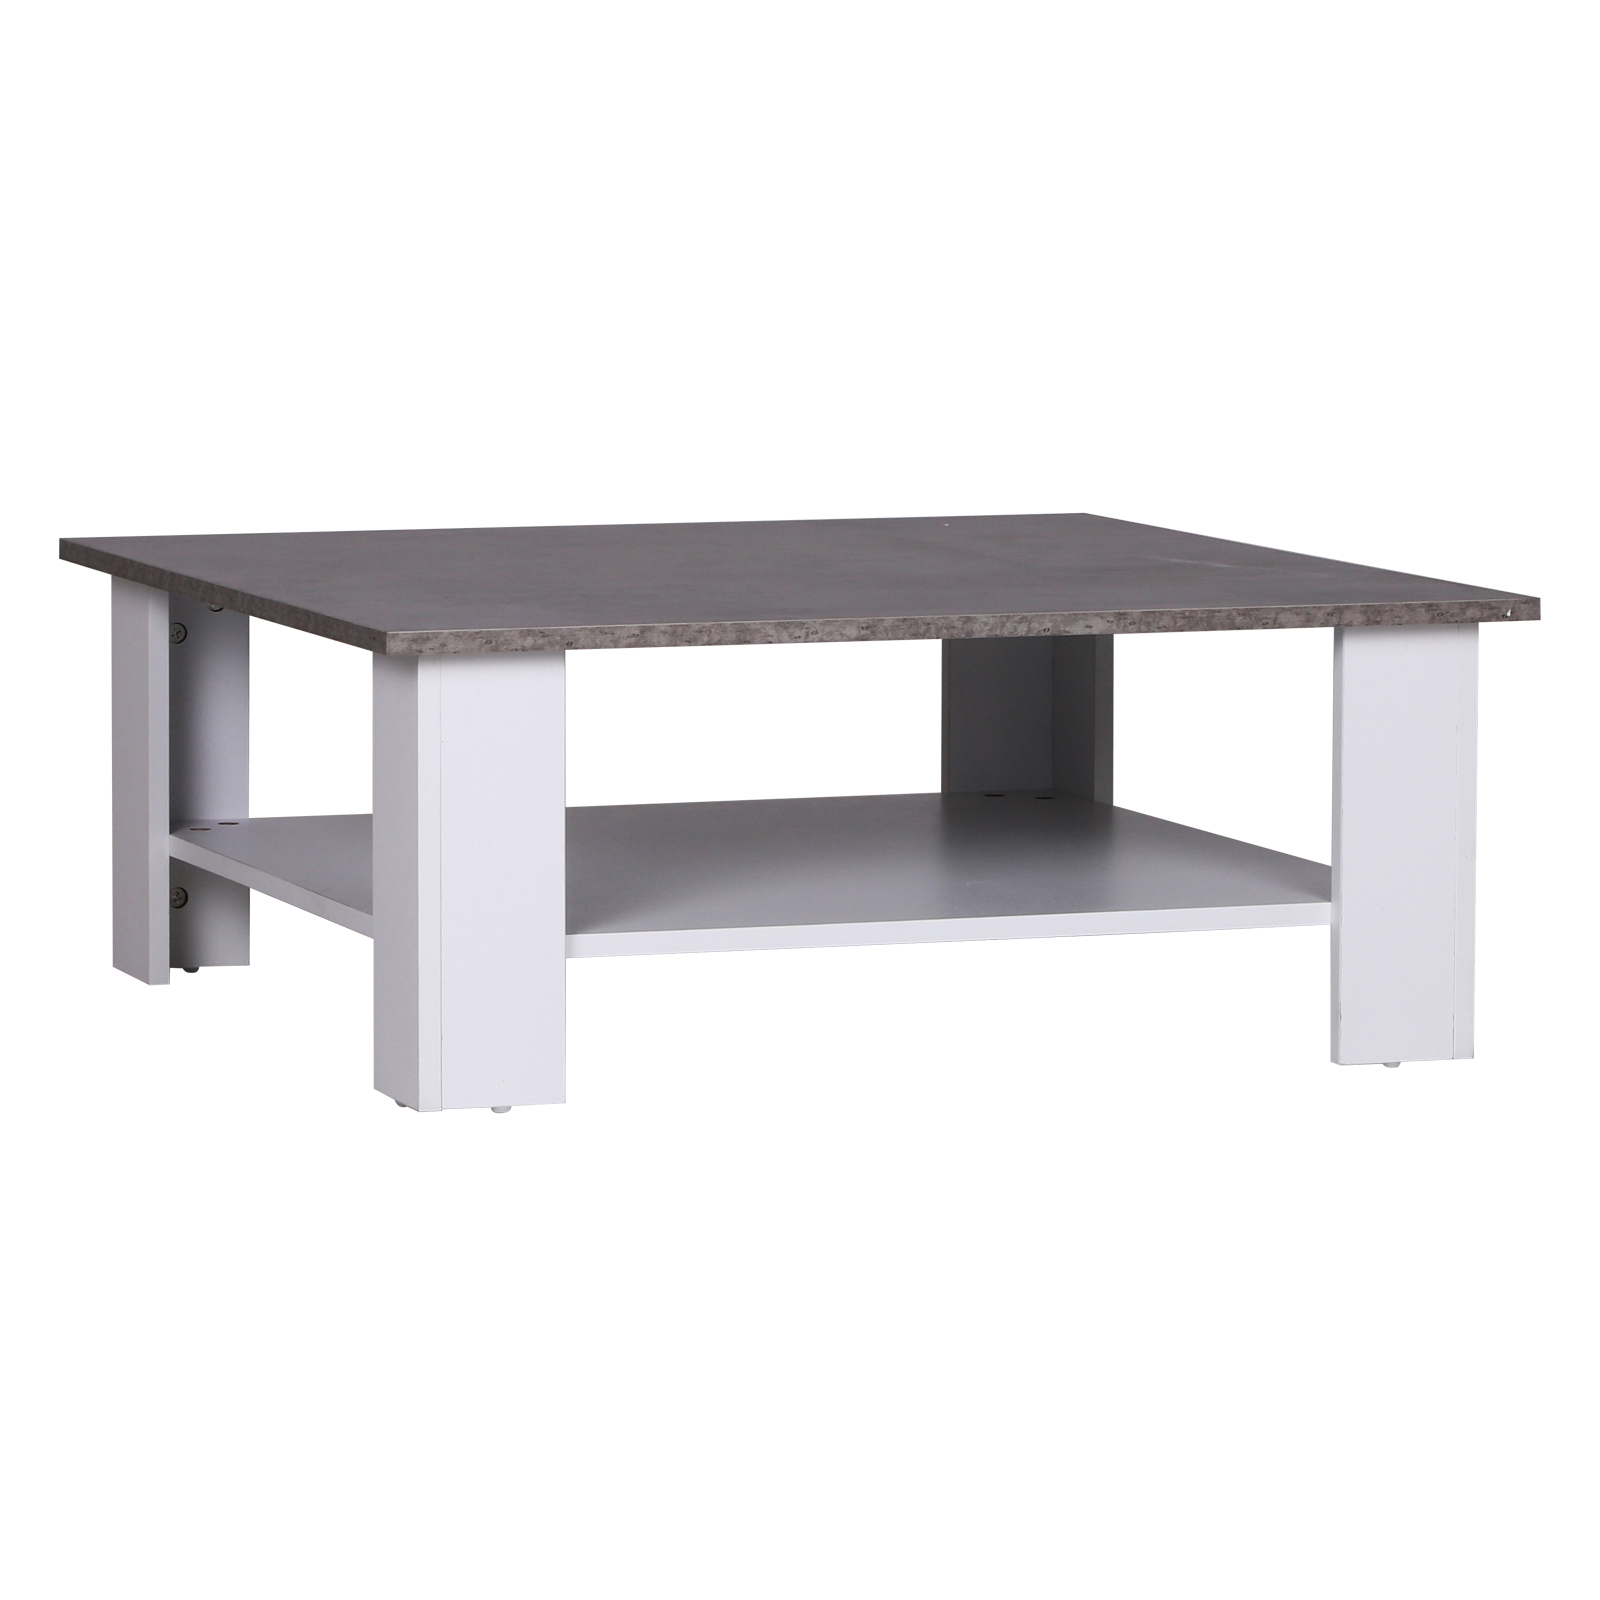 HOMCOM Coffee Table Large Shelf Stable From Living In Particle Board 80x80x31,5 Cm Cement, White